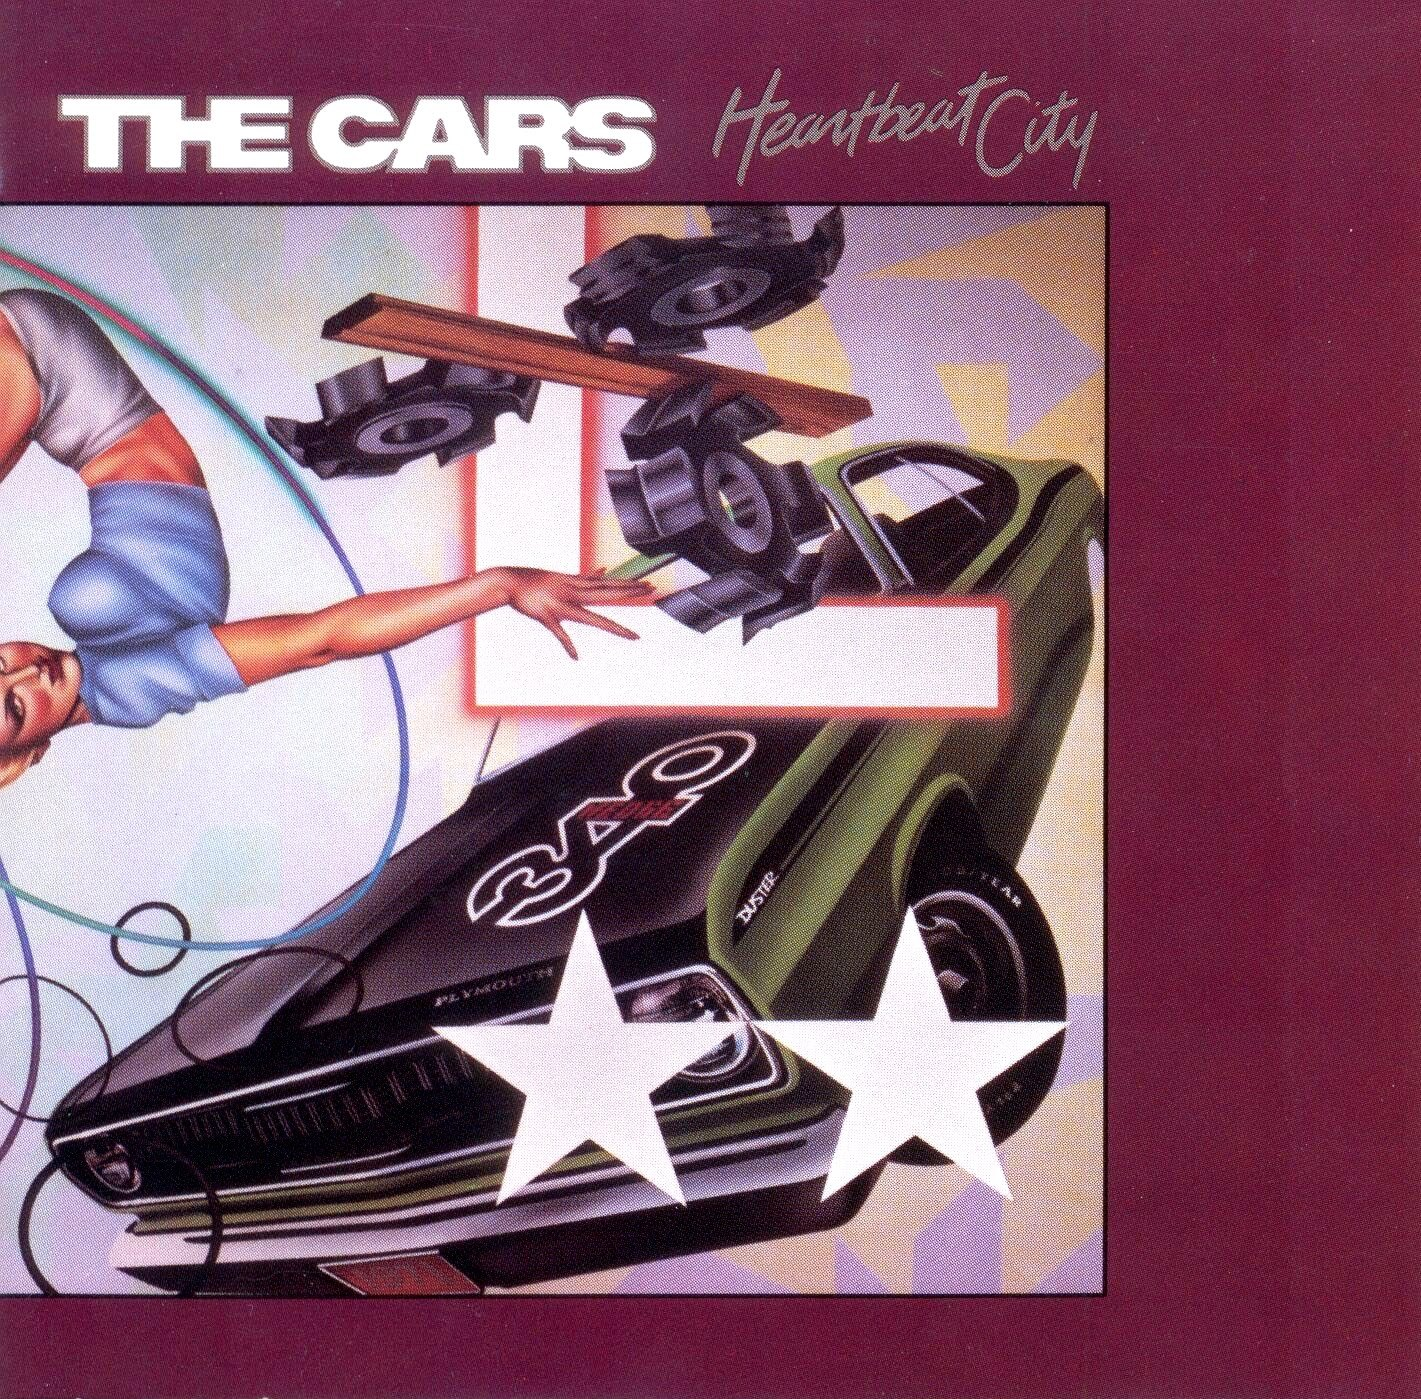 cars-heartbeat-city